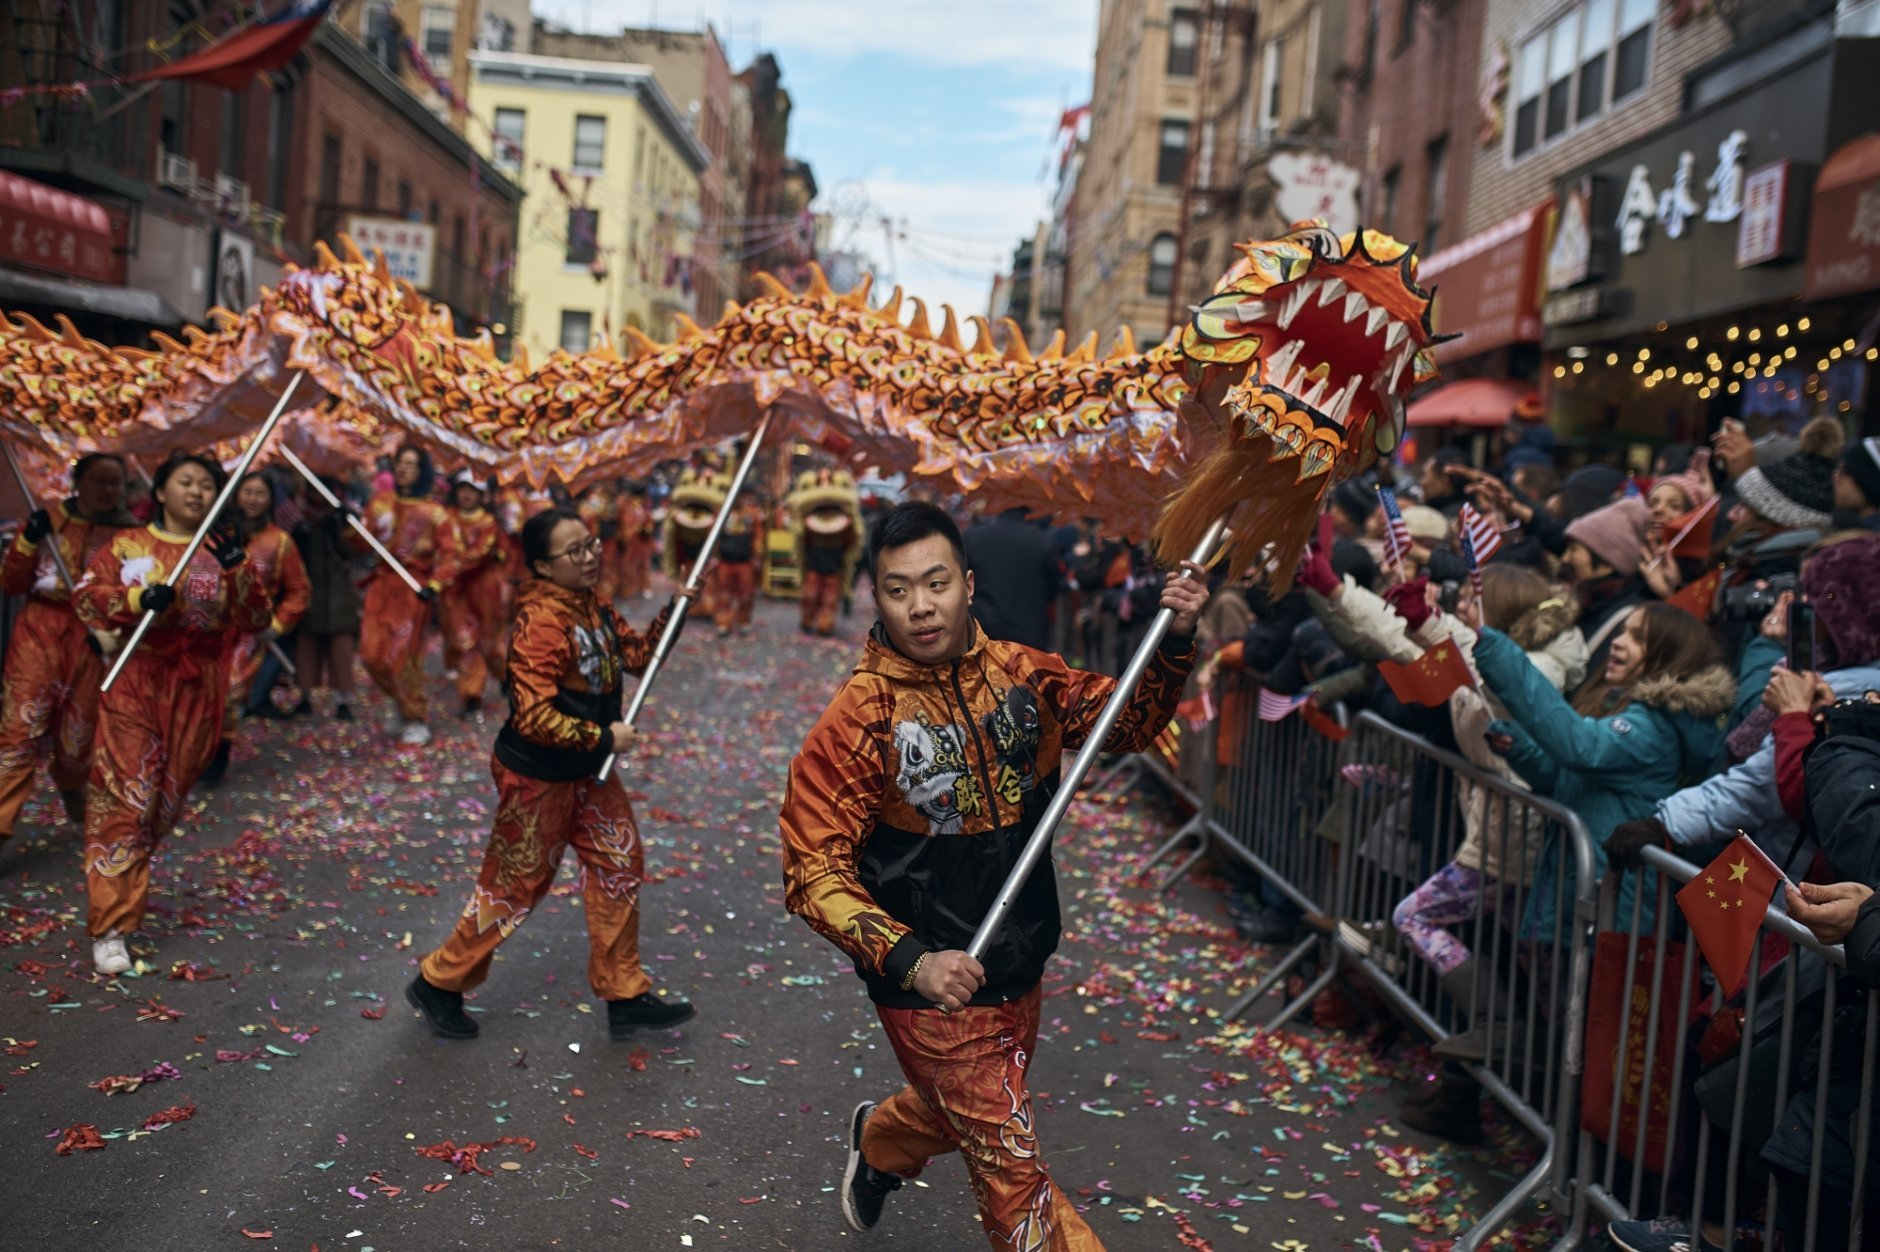 A member of a dragon dance group carries the head of the dragon during the Chinese Lunar New Year parade in Chinatown in New York, Sunday, Feb. 17, 2019. (AP Photo/Andres Kudacki)